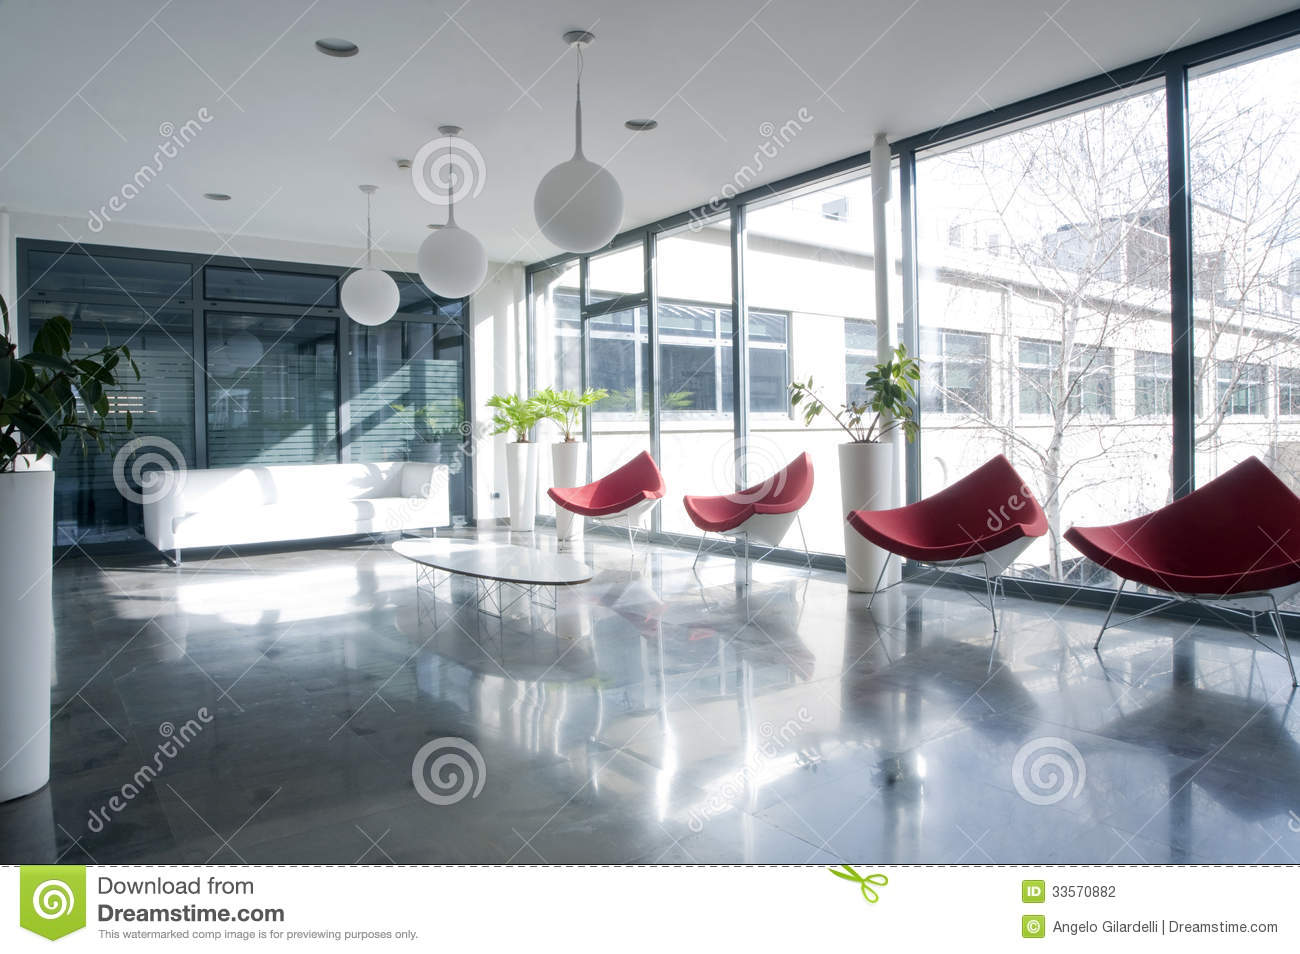 modern contemporary sofa images of table decorations office building hall stock photo. image ...